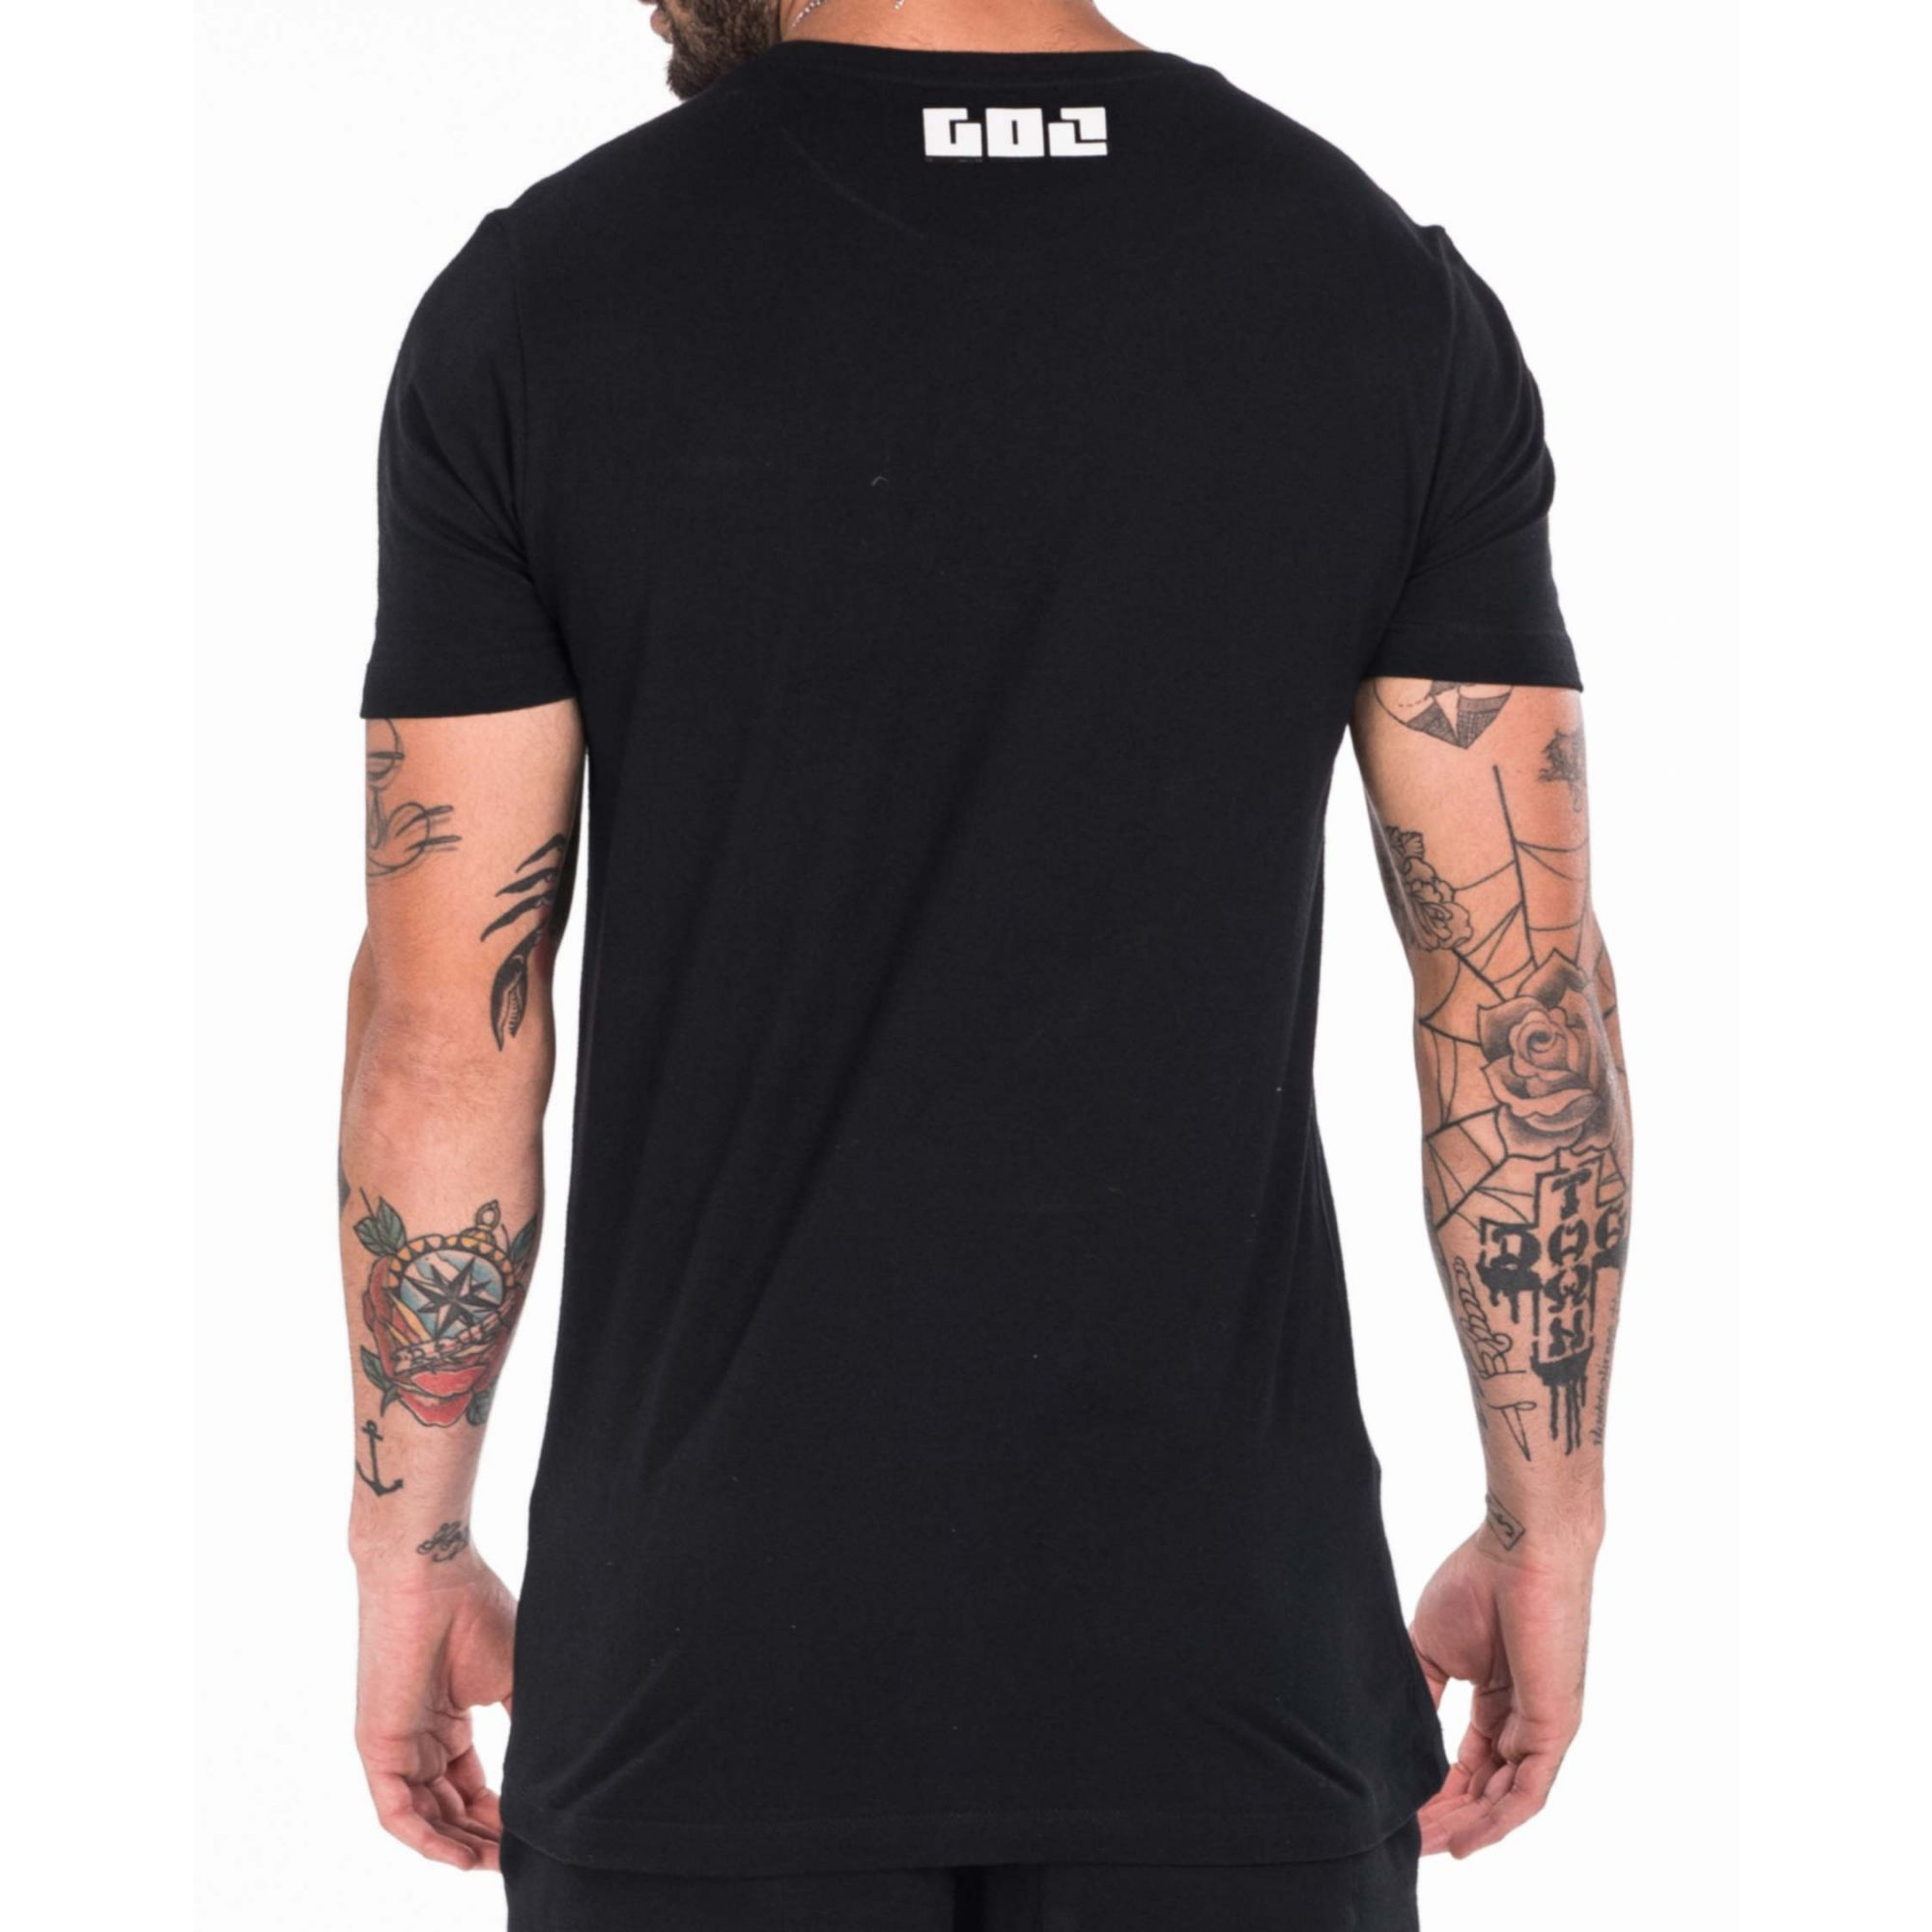 Camiseta Gol By Buh Outline Black